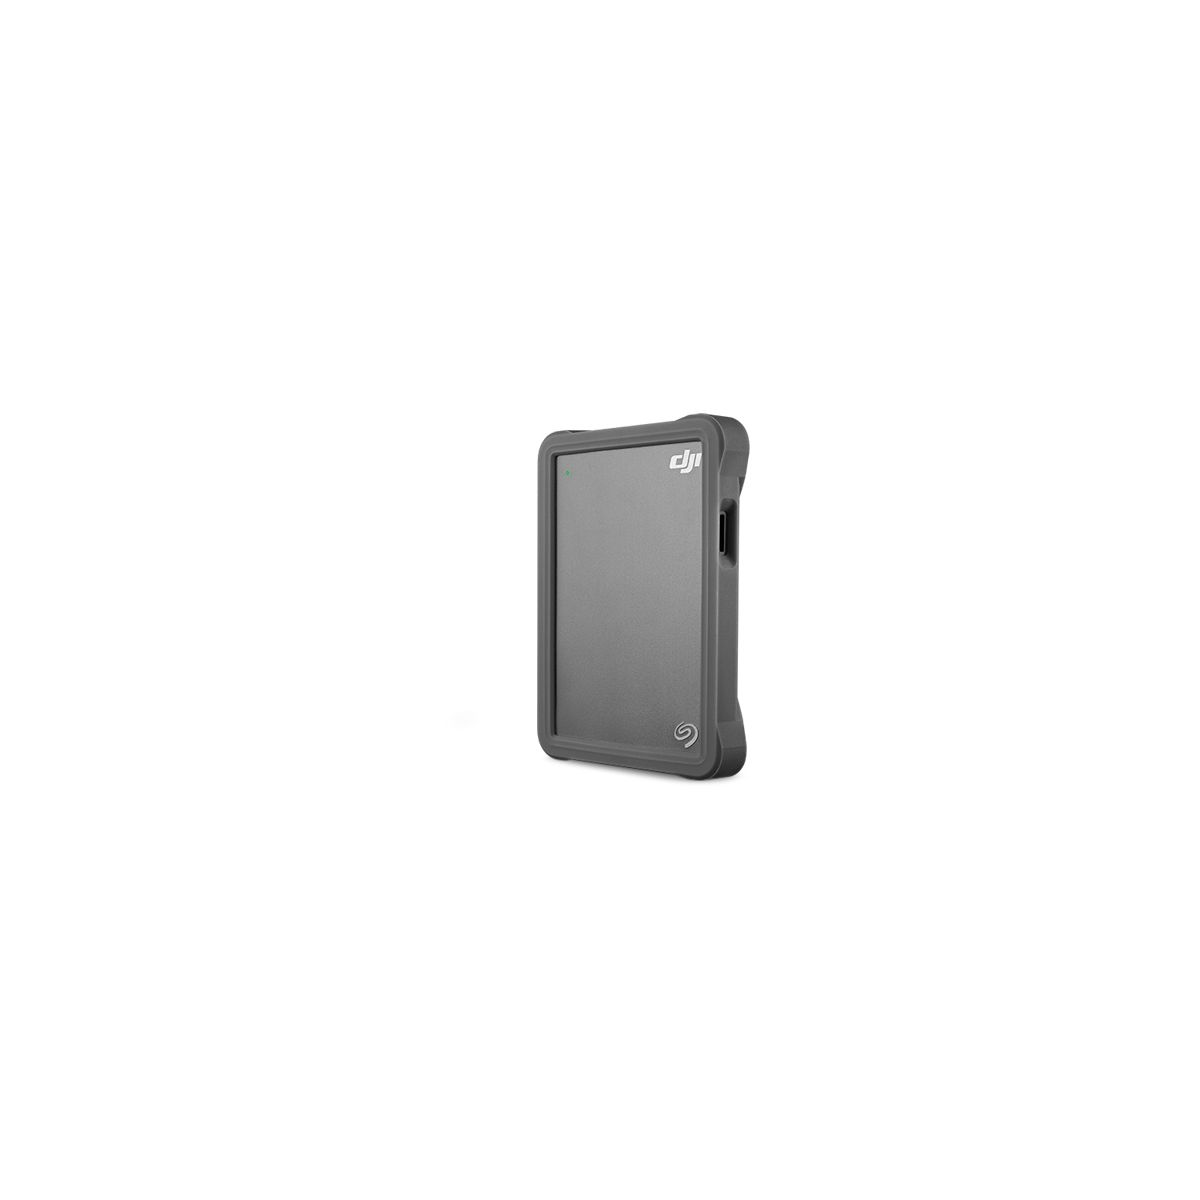 Disque dur externe SEAGATE 2,5'' 2 To DJI Fly Drive